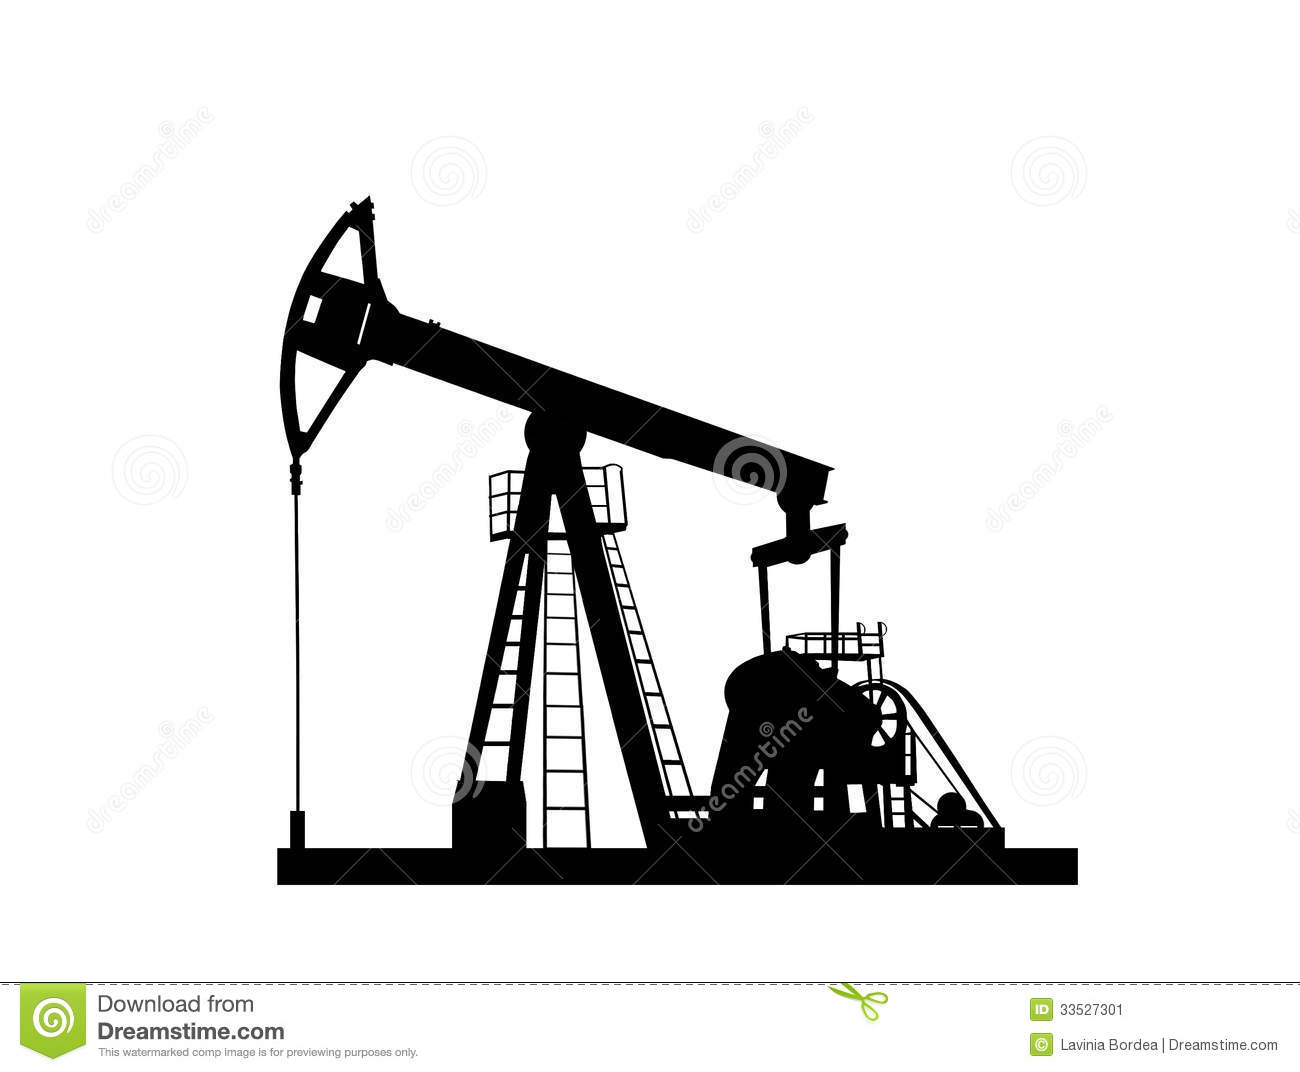 Pump Jack Drawing at PaintingValley.com.